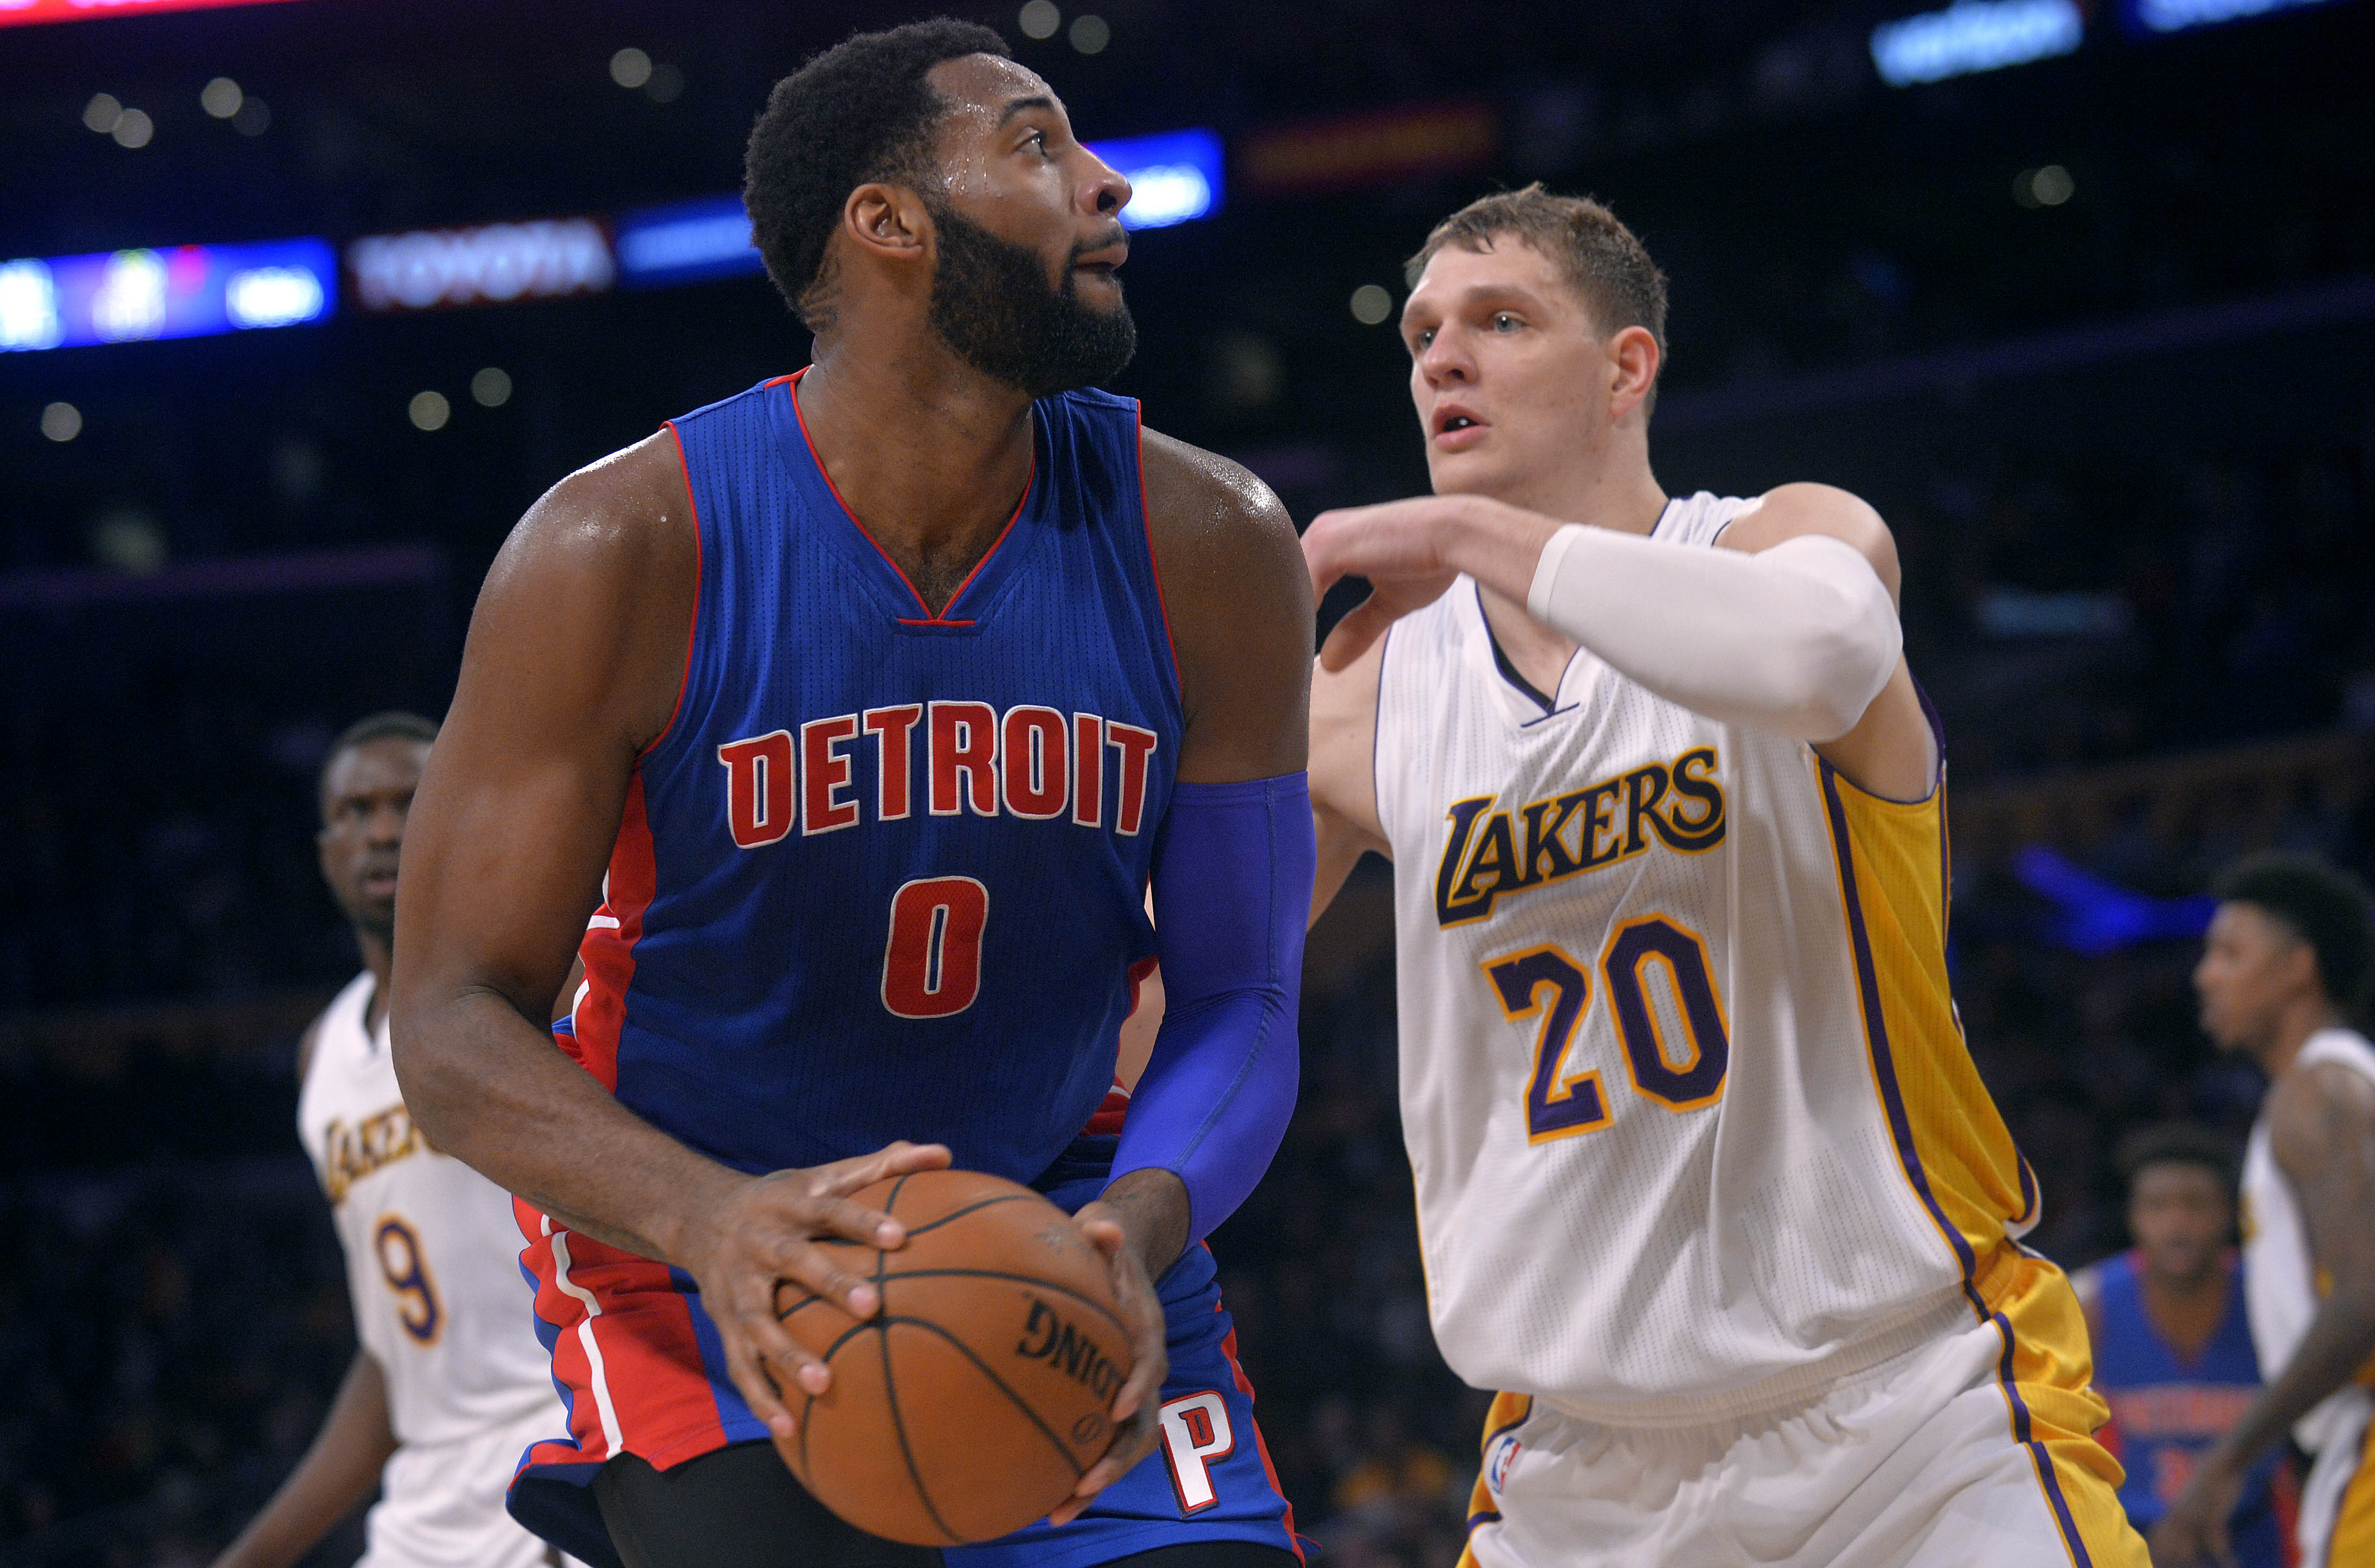 Pistons Vs Lakers: Detroit Pistons: Previewing The Pistons Home Game Vs The